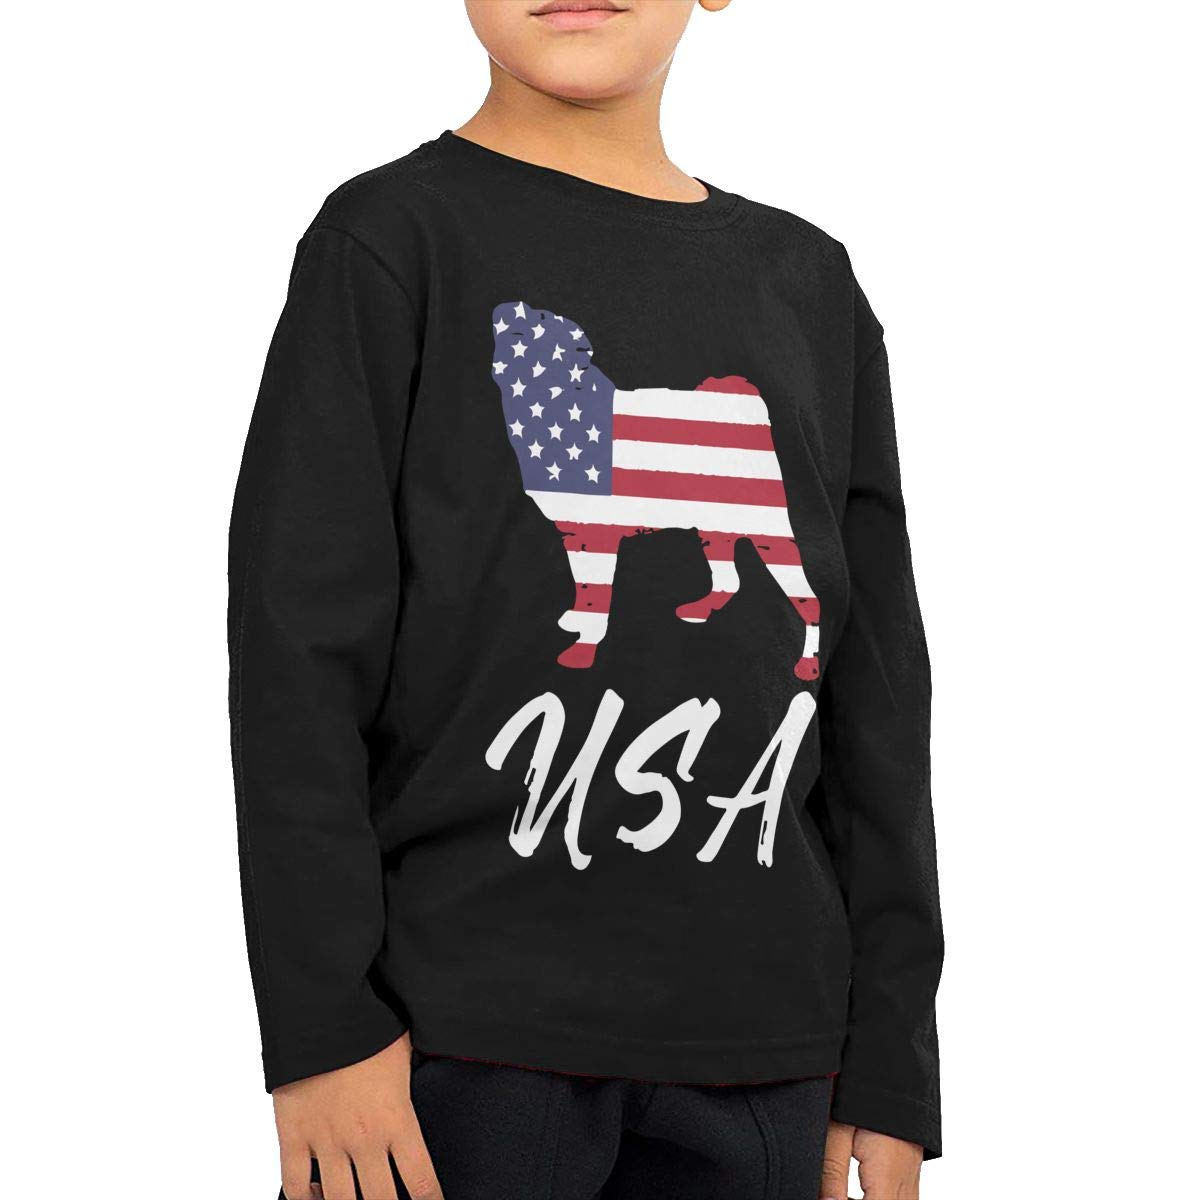 American Pug USA Flag Infant Kids Crewneck Long Sleeve Shirt Tee for Toddlers